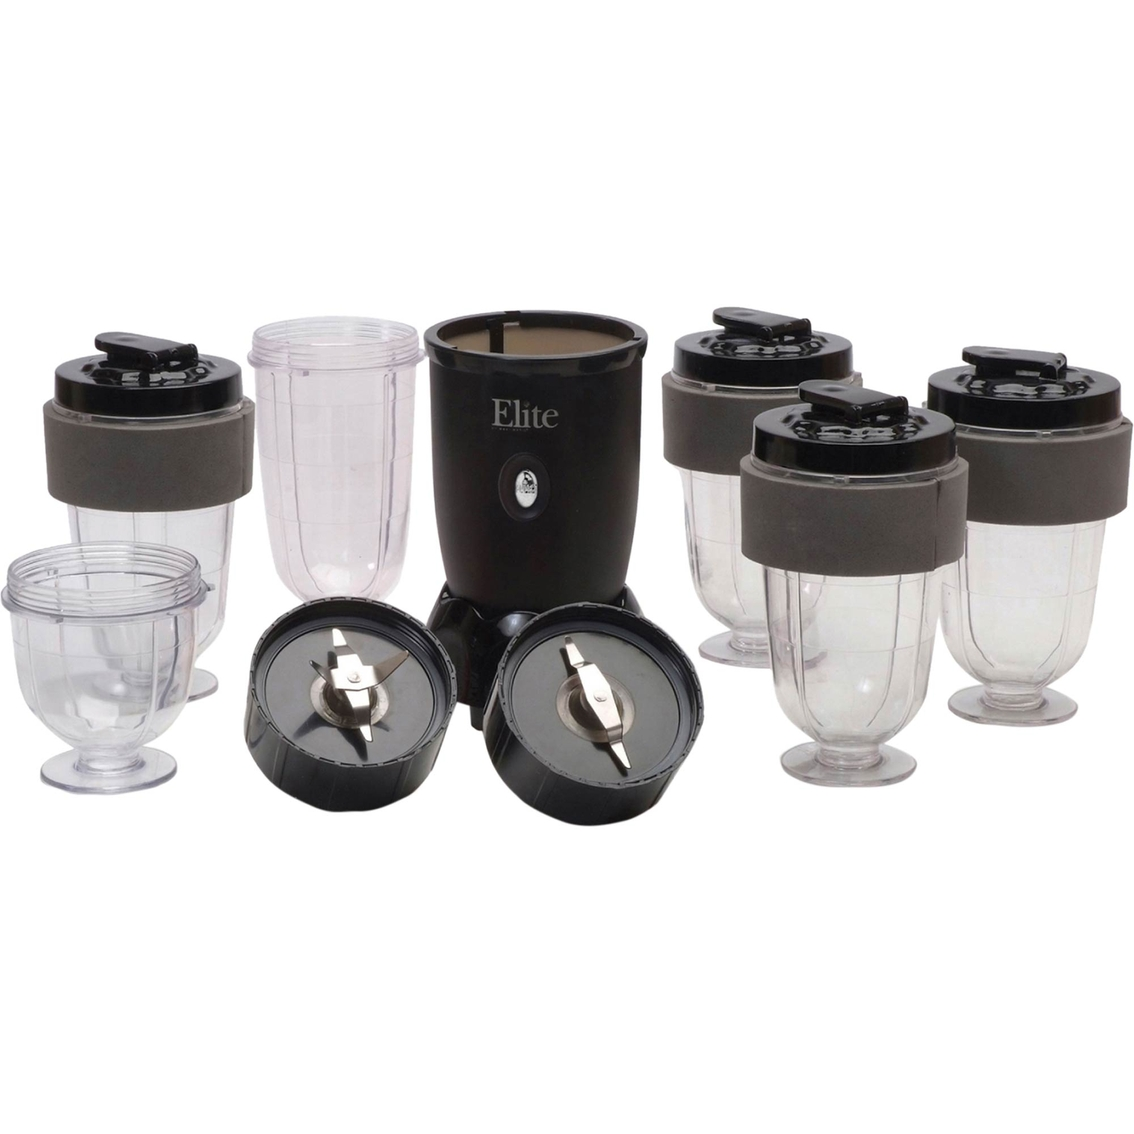 Elite cuisine personal drink mixer and blender juicers for The perfect drink mixer